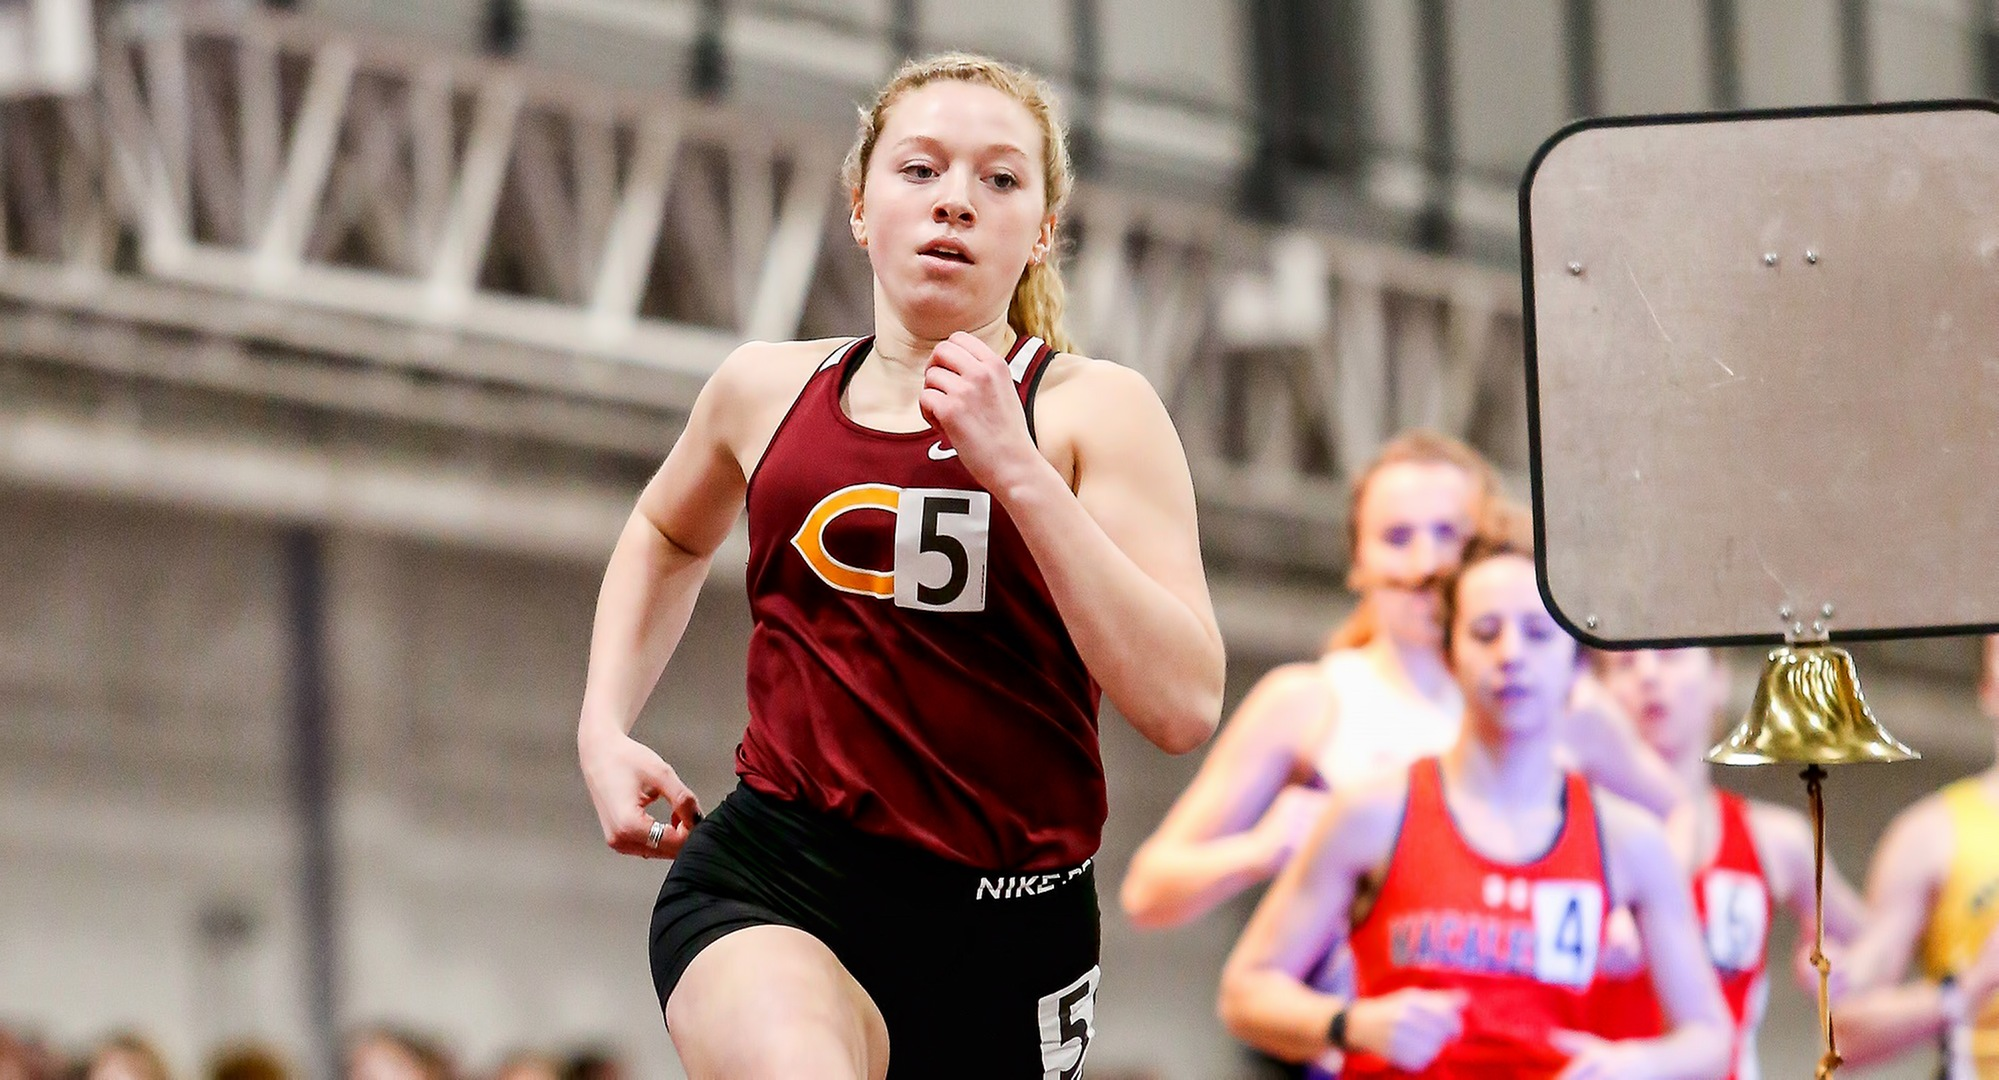 Junior Josie Herrmann had a pair of fourth-place finishes at the DI hosted NDSU Bison OPen meet. She now owns the fastest time in the MIAC in the 600 meters.